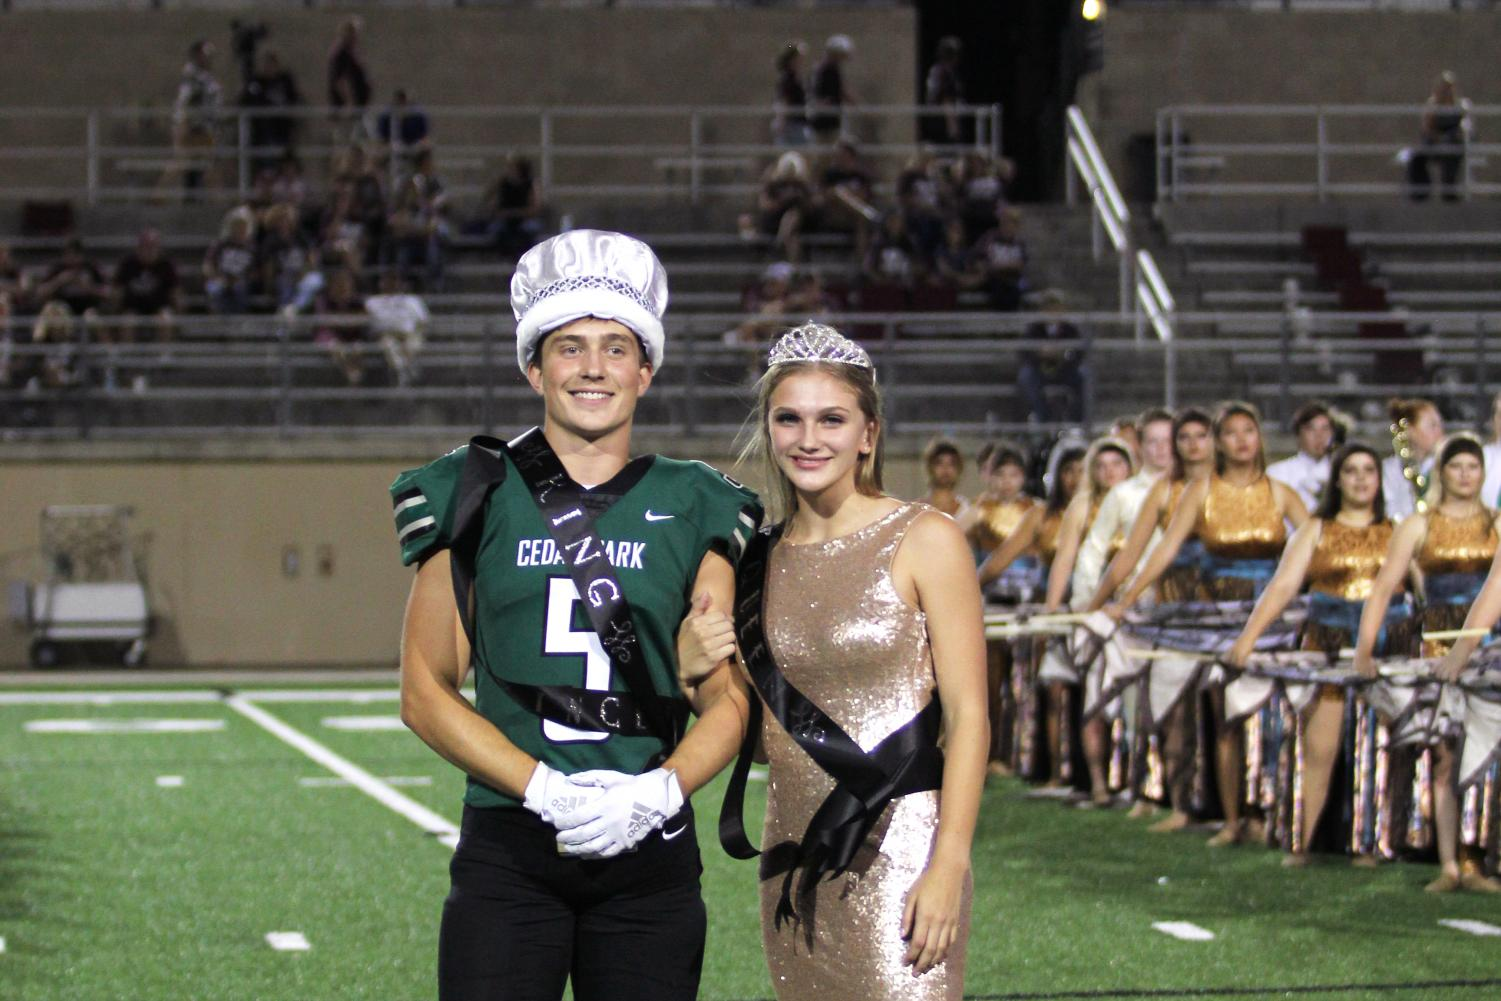 Posing together, seniors Majeston Haverda and Grayson Moore accept their crowning as homecoming king and queen on Sept. 20. Both Haverda and Moore said they were grateful for the opportunity their fellow peers granted them.